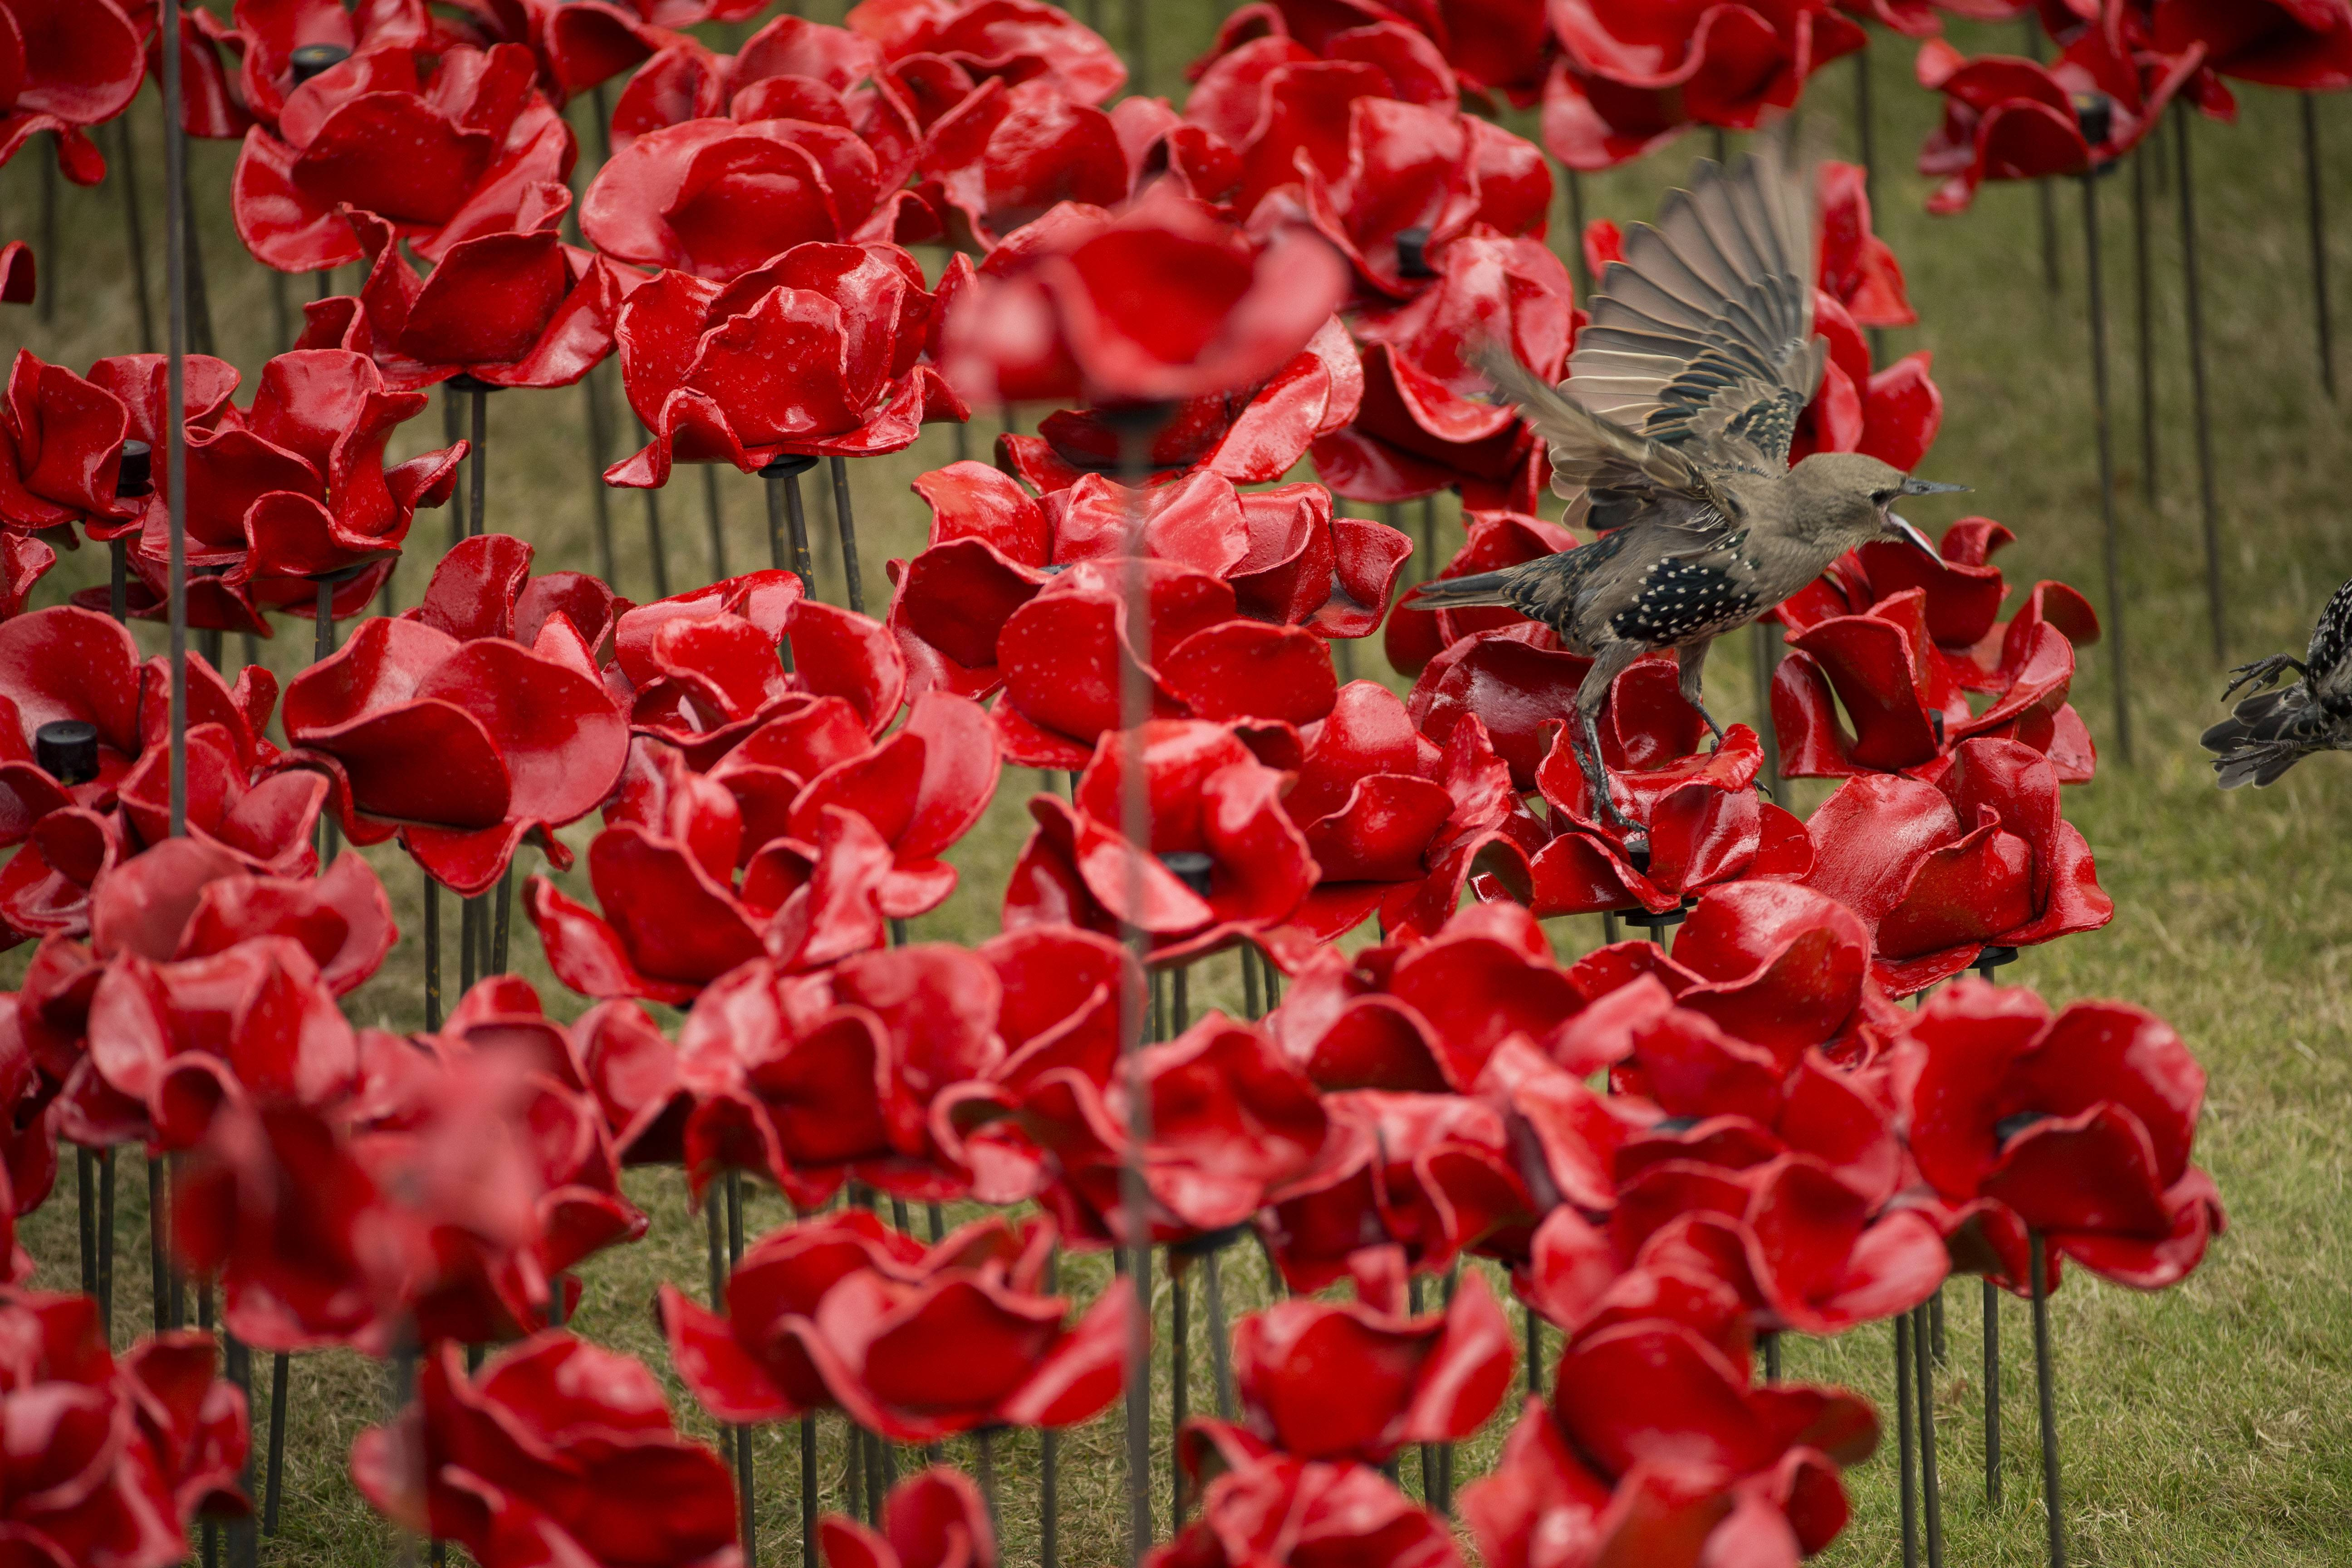 A bird squawks at another on the ceramic poppy art installation by artist Paul Cummins entitled 'Blood Swept Lands and Seas of Red.'